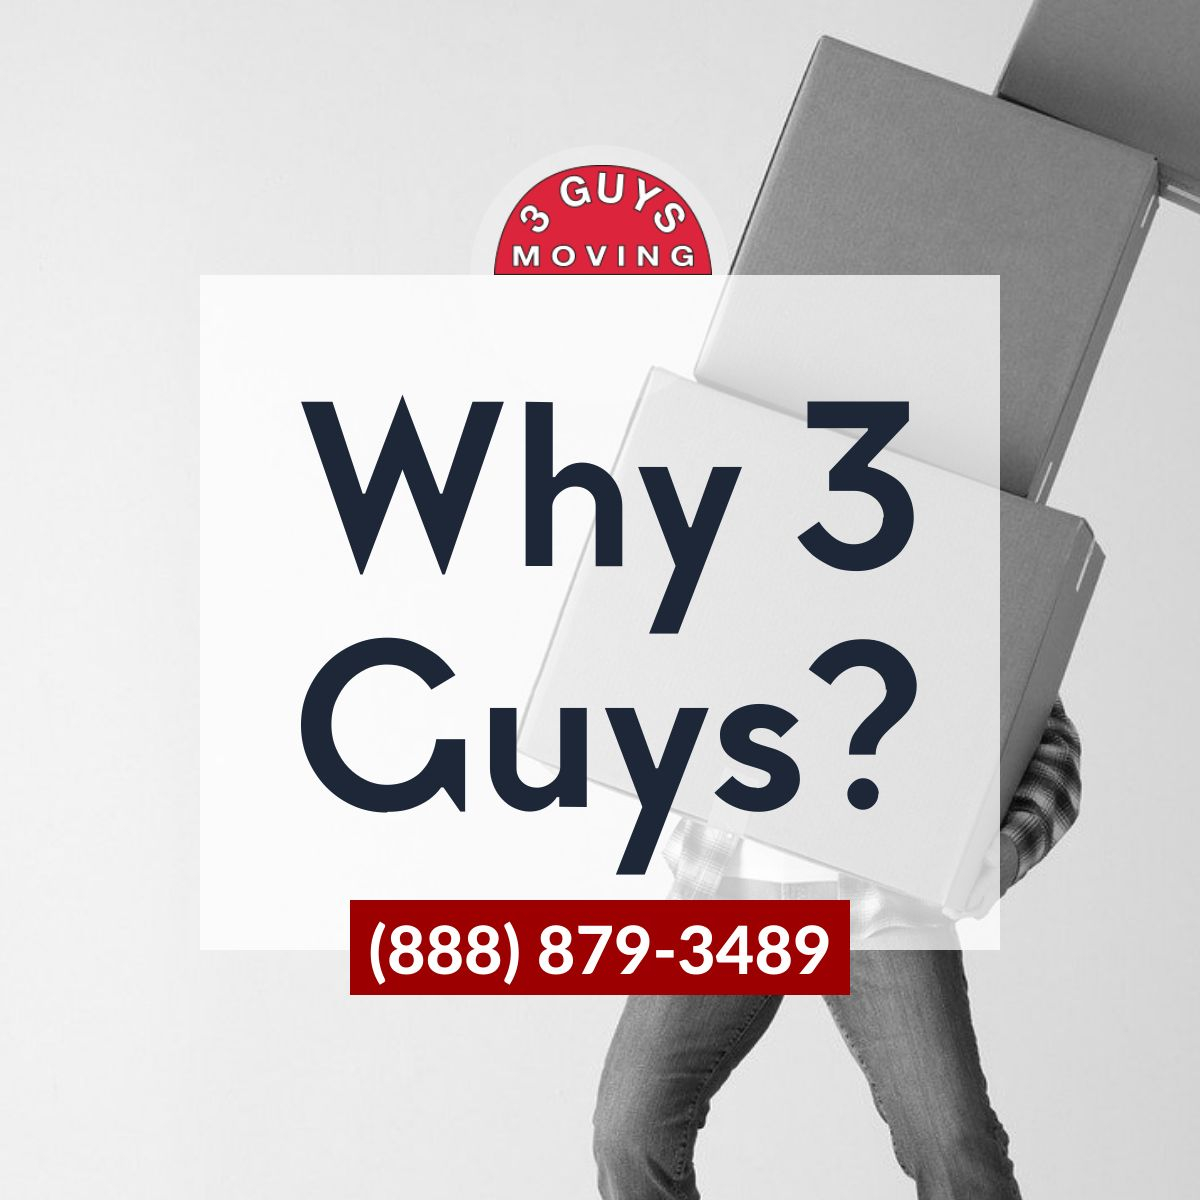 3 Guys Moving - Why 3 Guys?